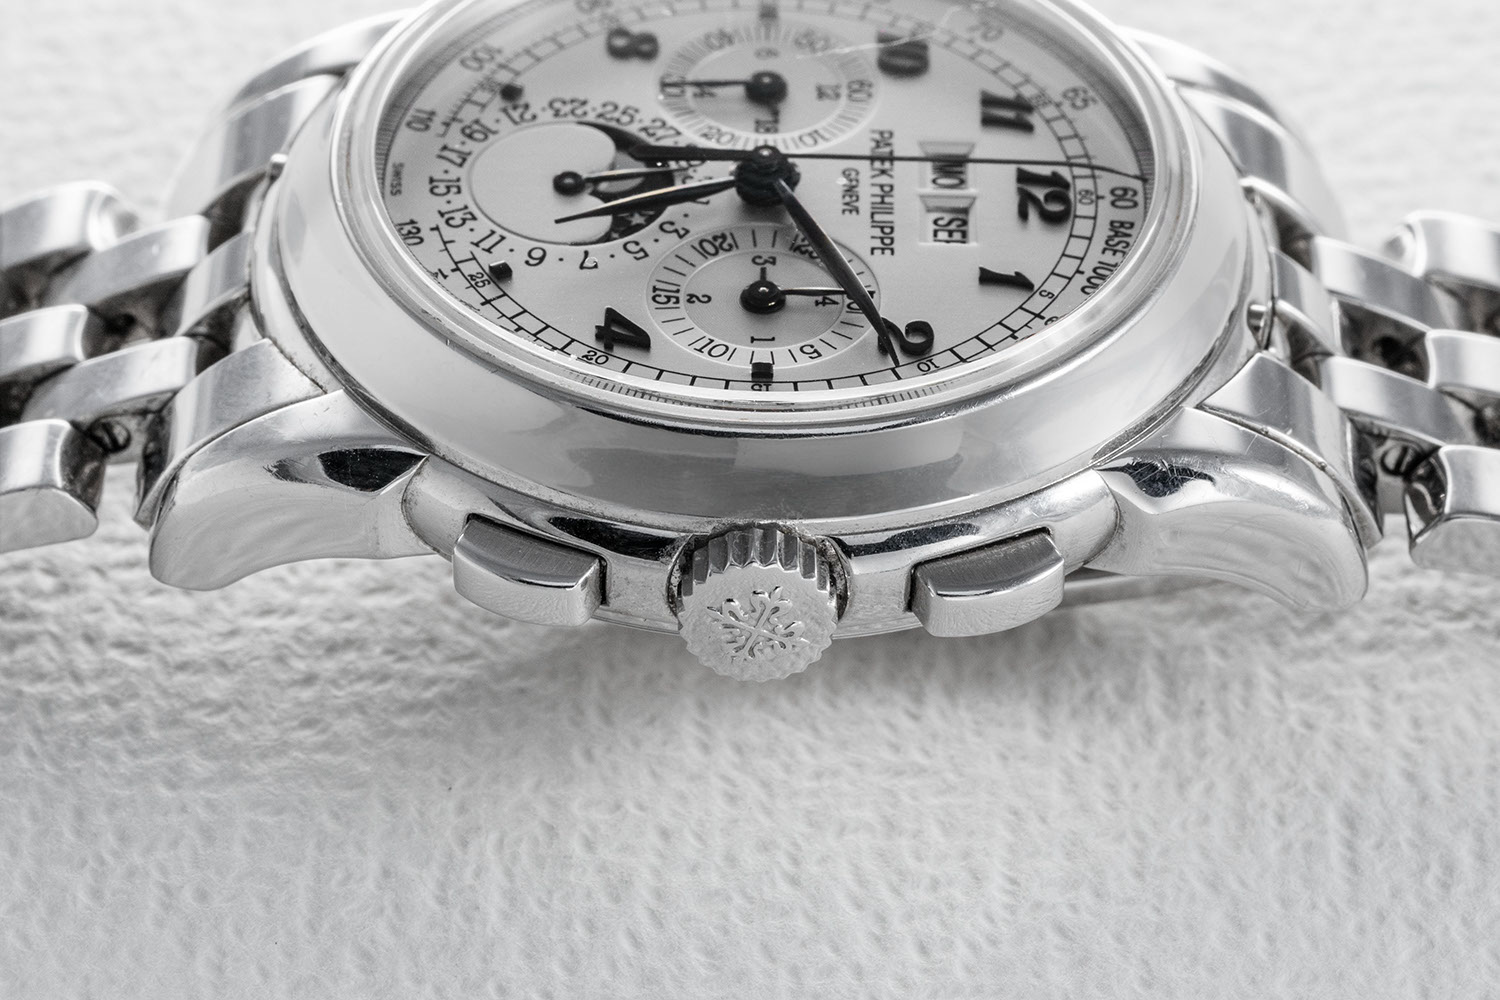 Chronograph pushers on the sides of Eric Clapton's Custom, Breguet-Numeral Patek Philippe Ref. 5970G (Image © Revolution)